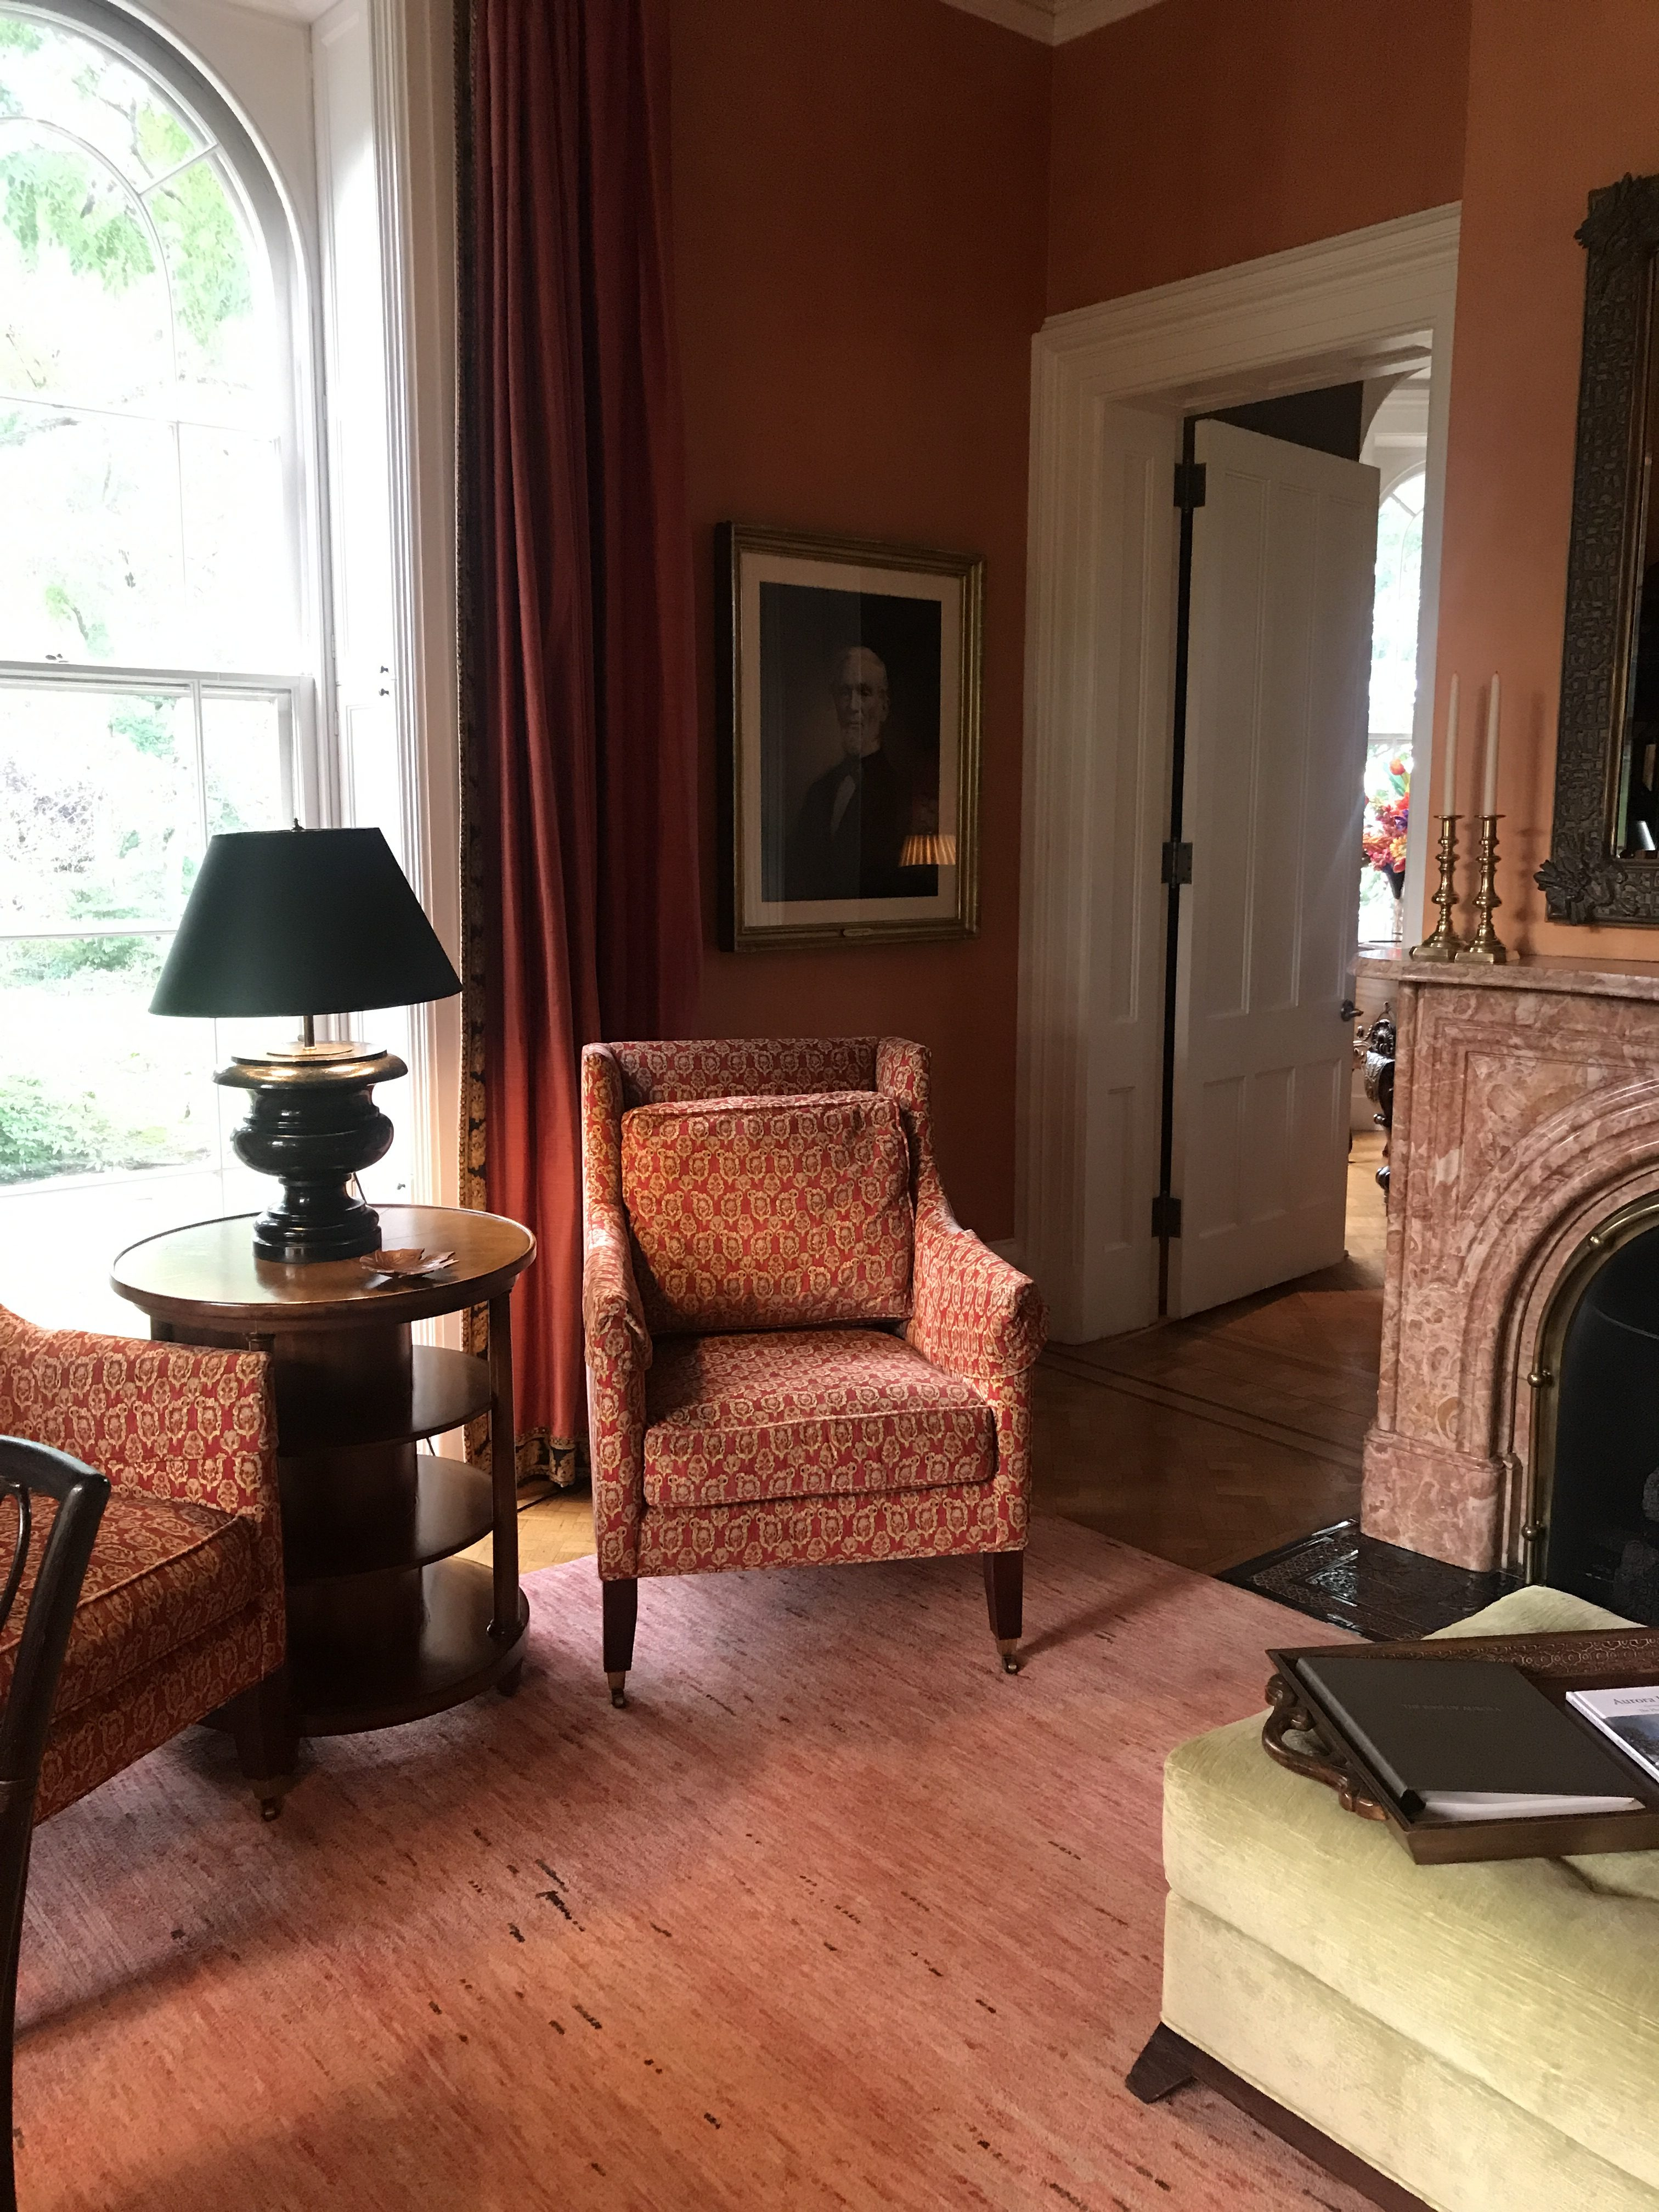 Our Trip to MacKenzie-Childs - The Spoiled Home